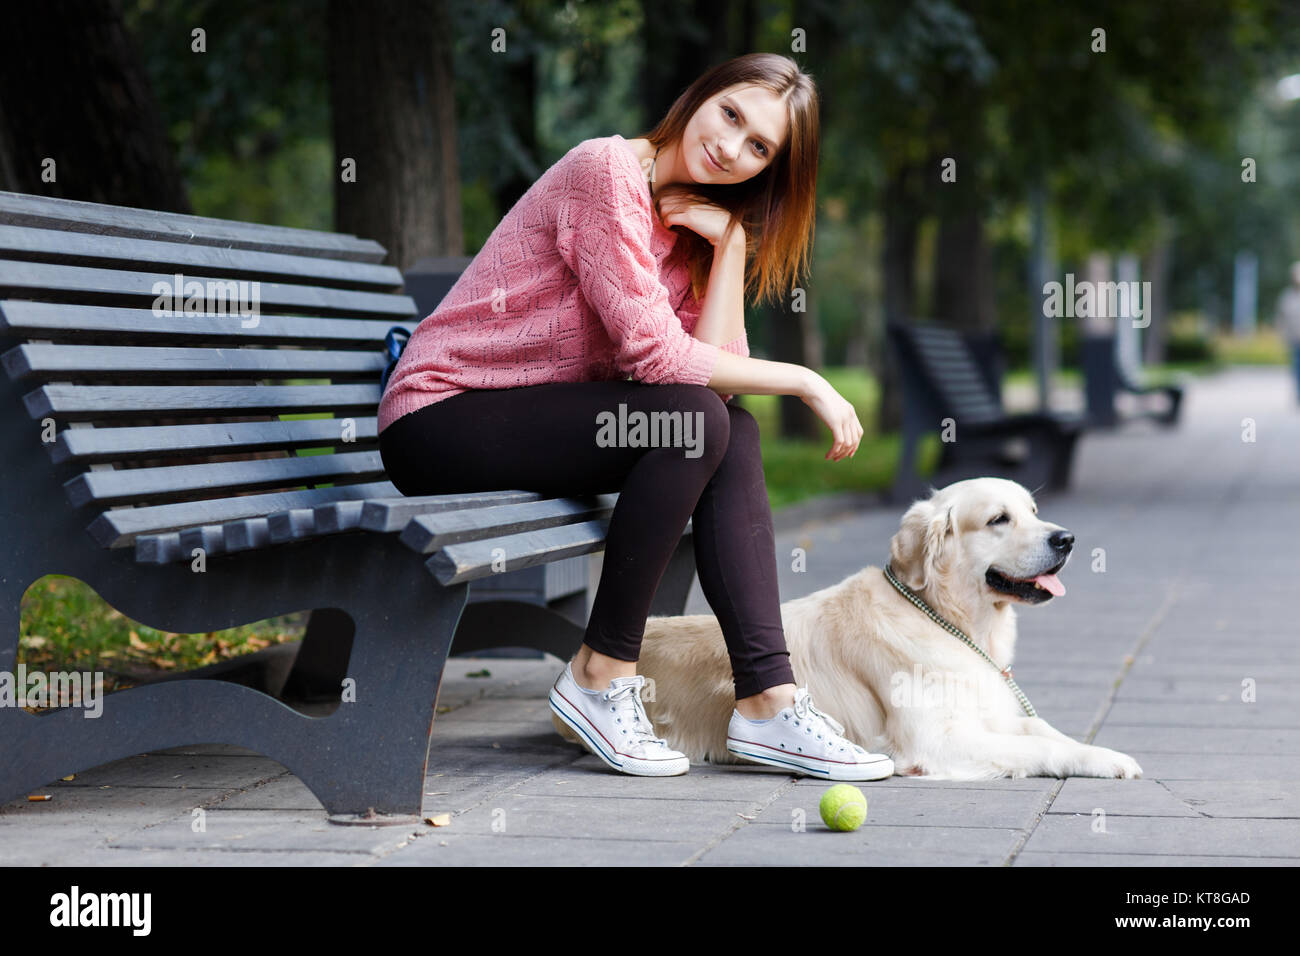 Picture of smiling woman sitting on bench, dog retriever on summer morning Stock Photo